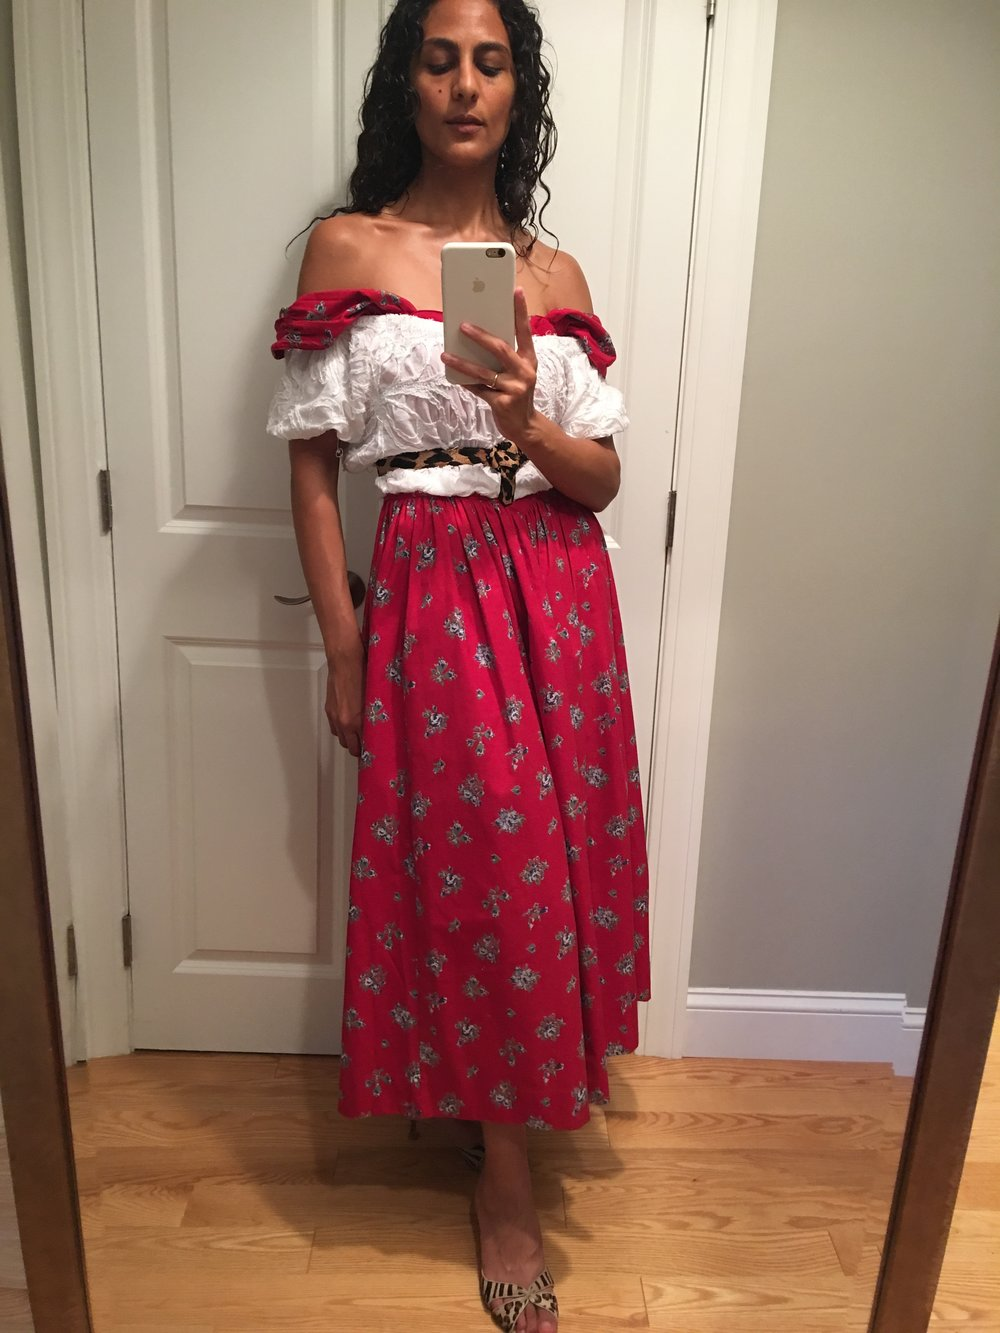 nadine_farag_man_repeller_mirror_selfies_fashion_self_acceptance_one_who_dresses